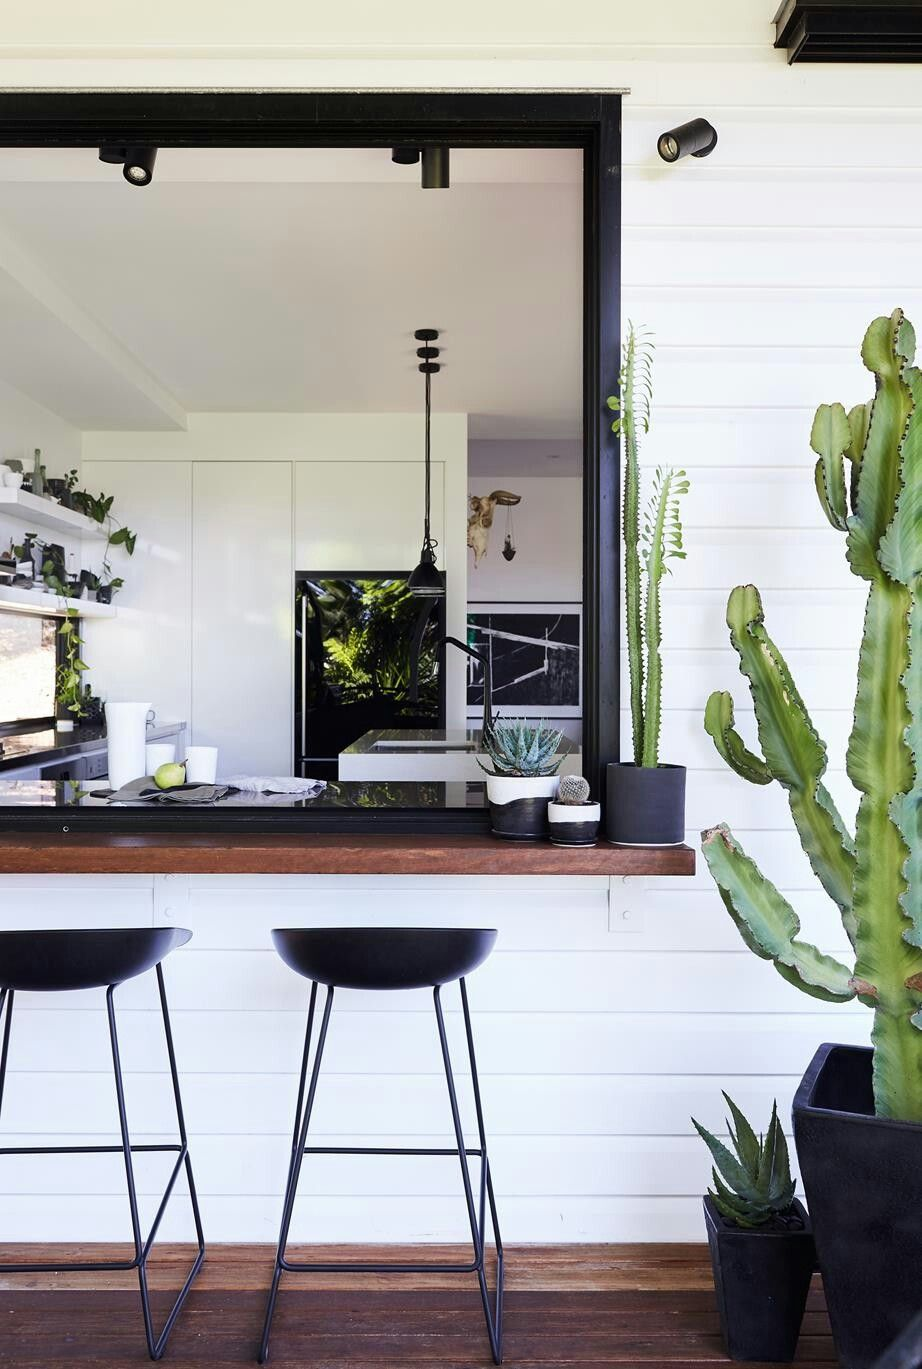 So Neat En Clean And épuré Home Design And Love The Cactus